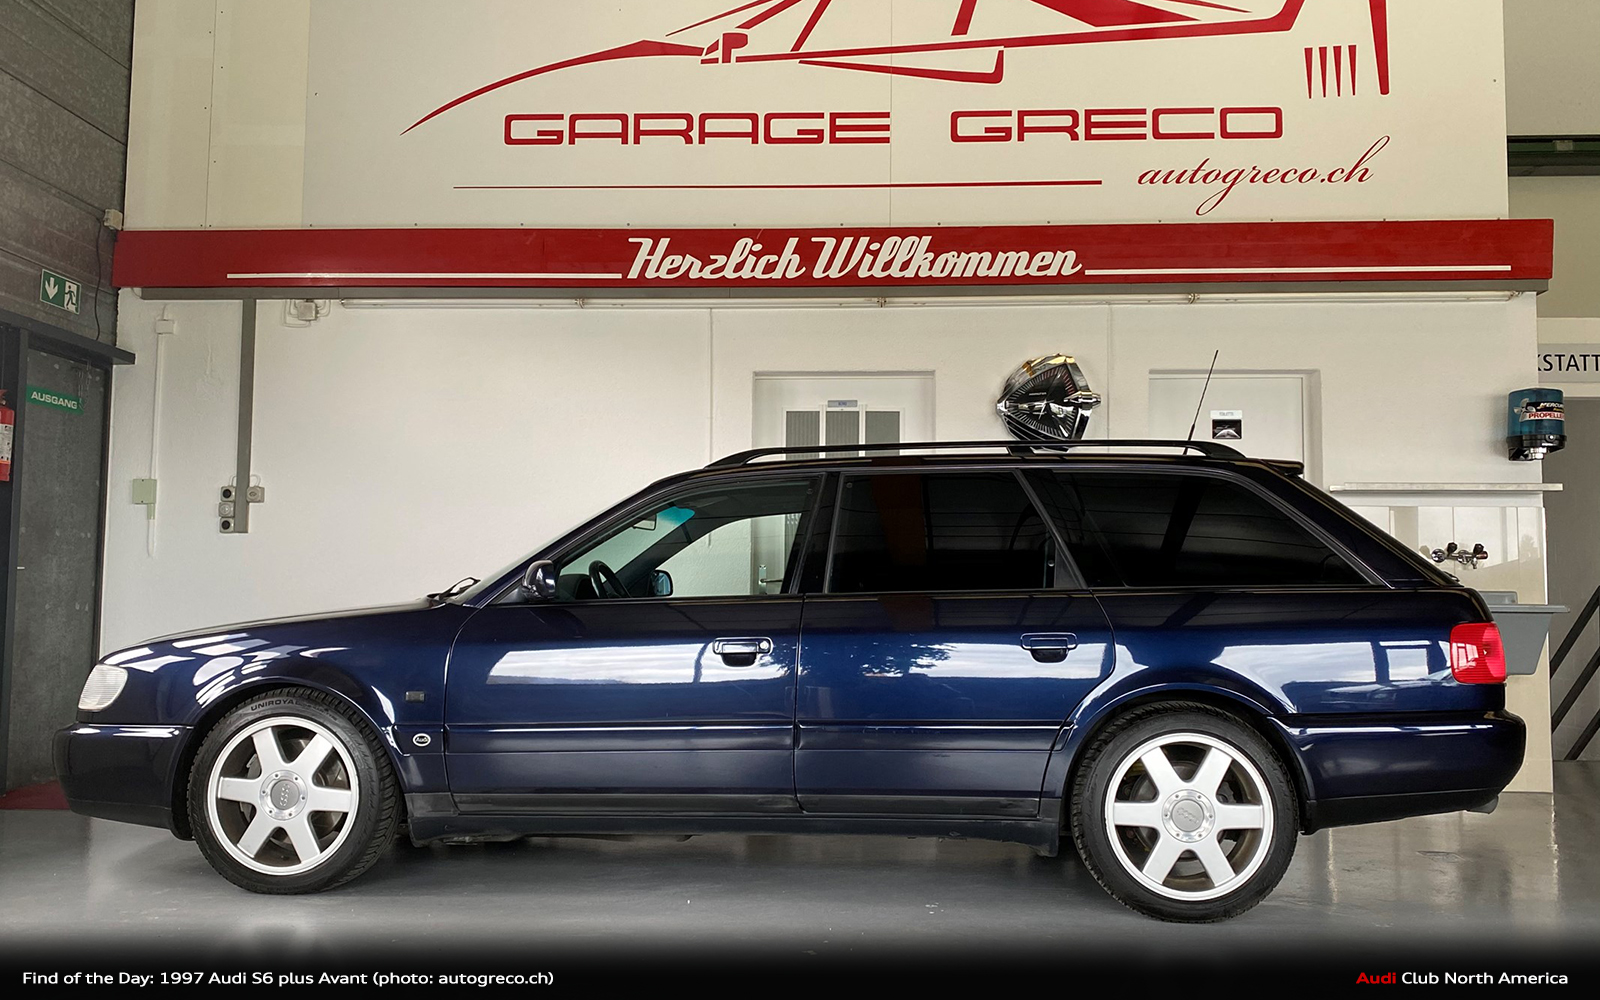 Find of the Day: 1997 Audi S6 plus Avant